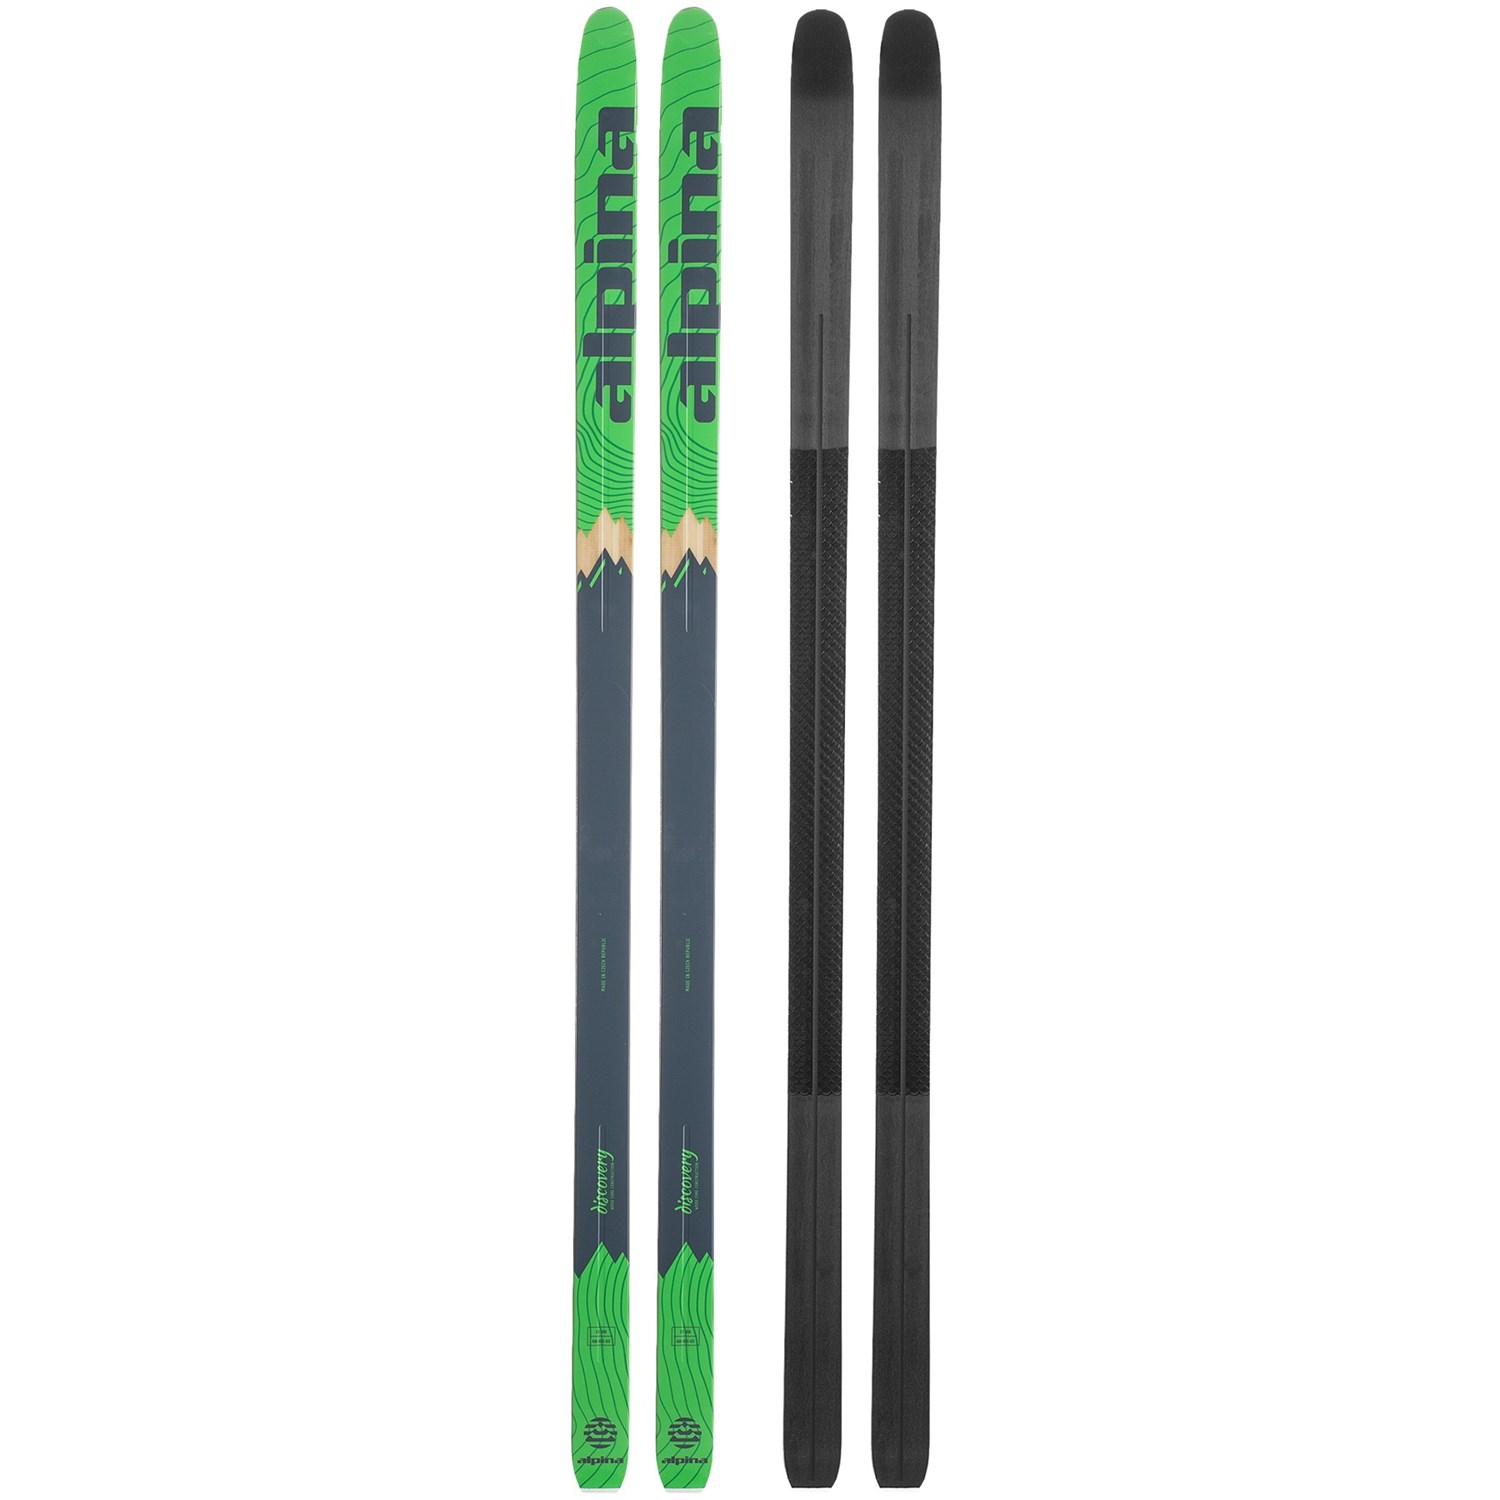 Alpina Discovery Touring Ski NEW Moab Gear Trader - Alpina cross country ski